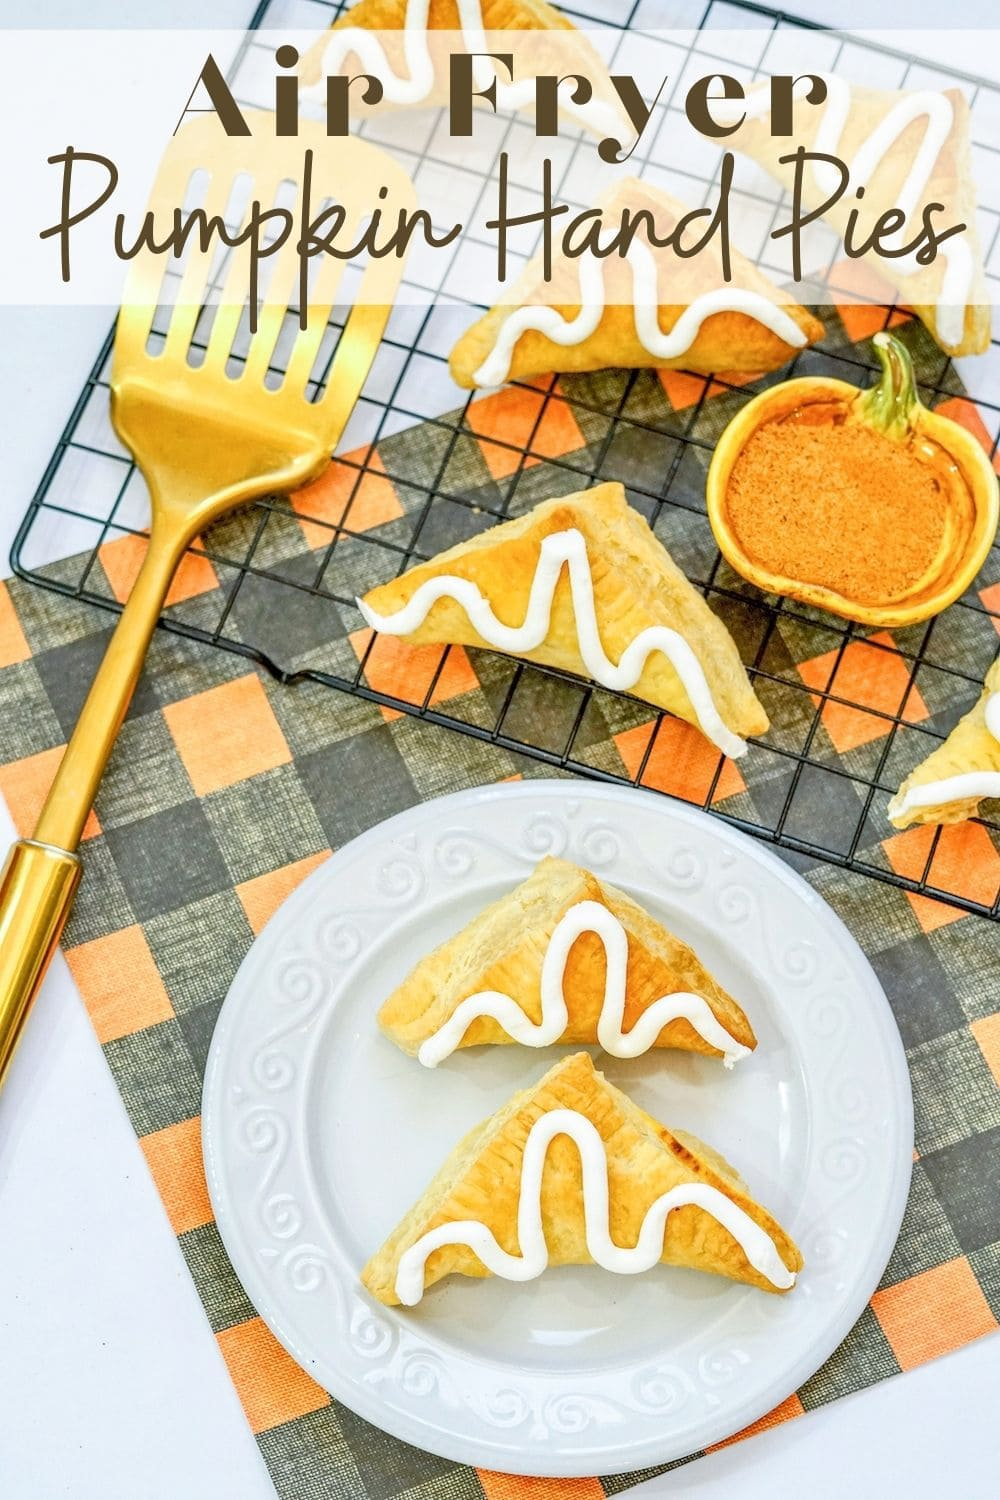 """Two pumpkin hand pies on a white plate with the words """"Air Fryer Pumpkin Hand Pies"""" in brown lettering at the top of the image."""